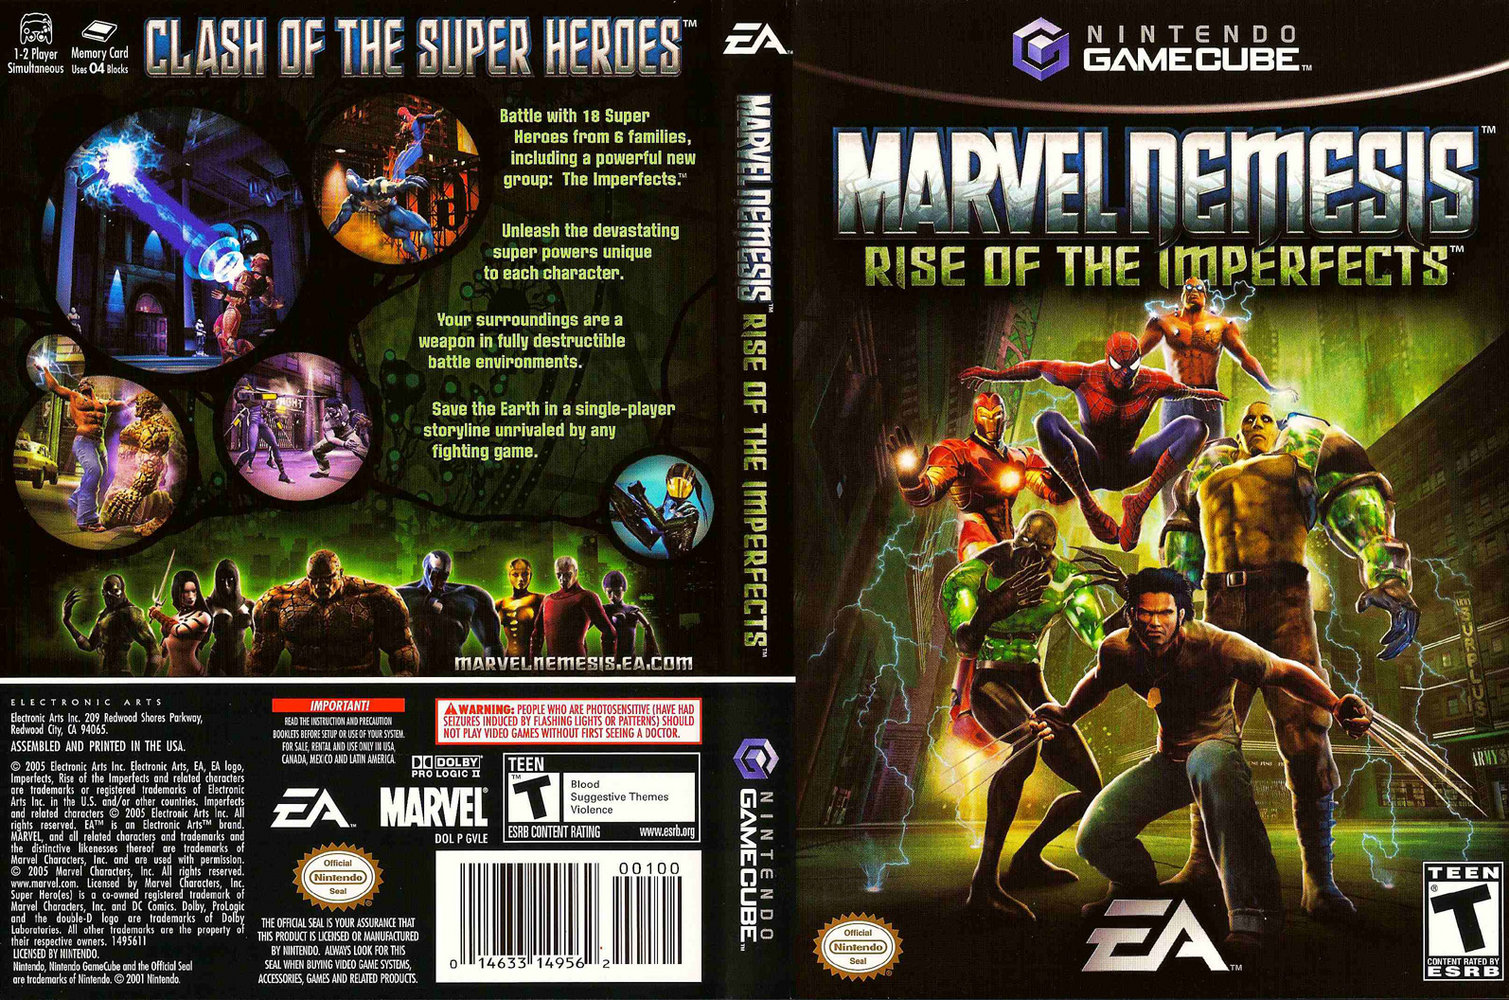 Marvel Nemesis Rise of the Imperfects ISO < GCN ISOs | Emuparadise